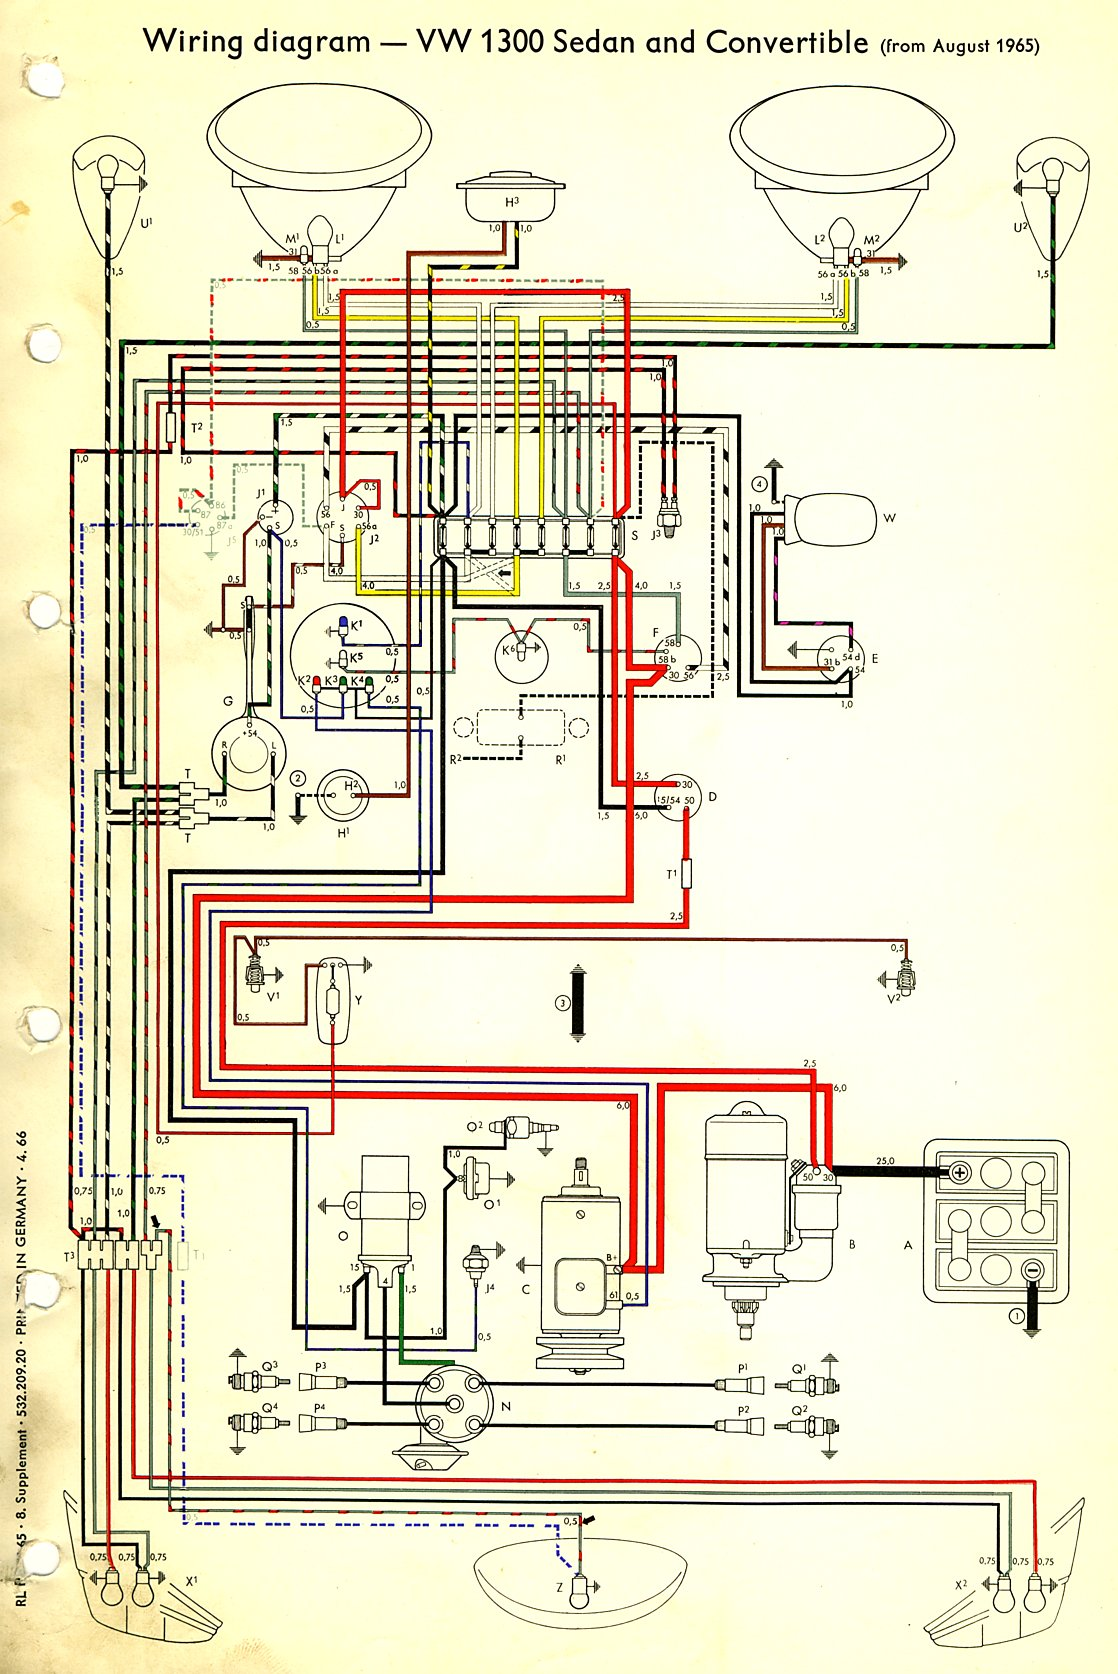 6 Volt Generator Schematic Vw Beetle Wiring Diagram Books Of Images Gallery 71 Wire Auto Electrical Rh Psu Edu Co Fr Bitoku Me